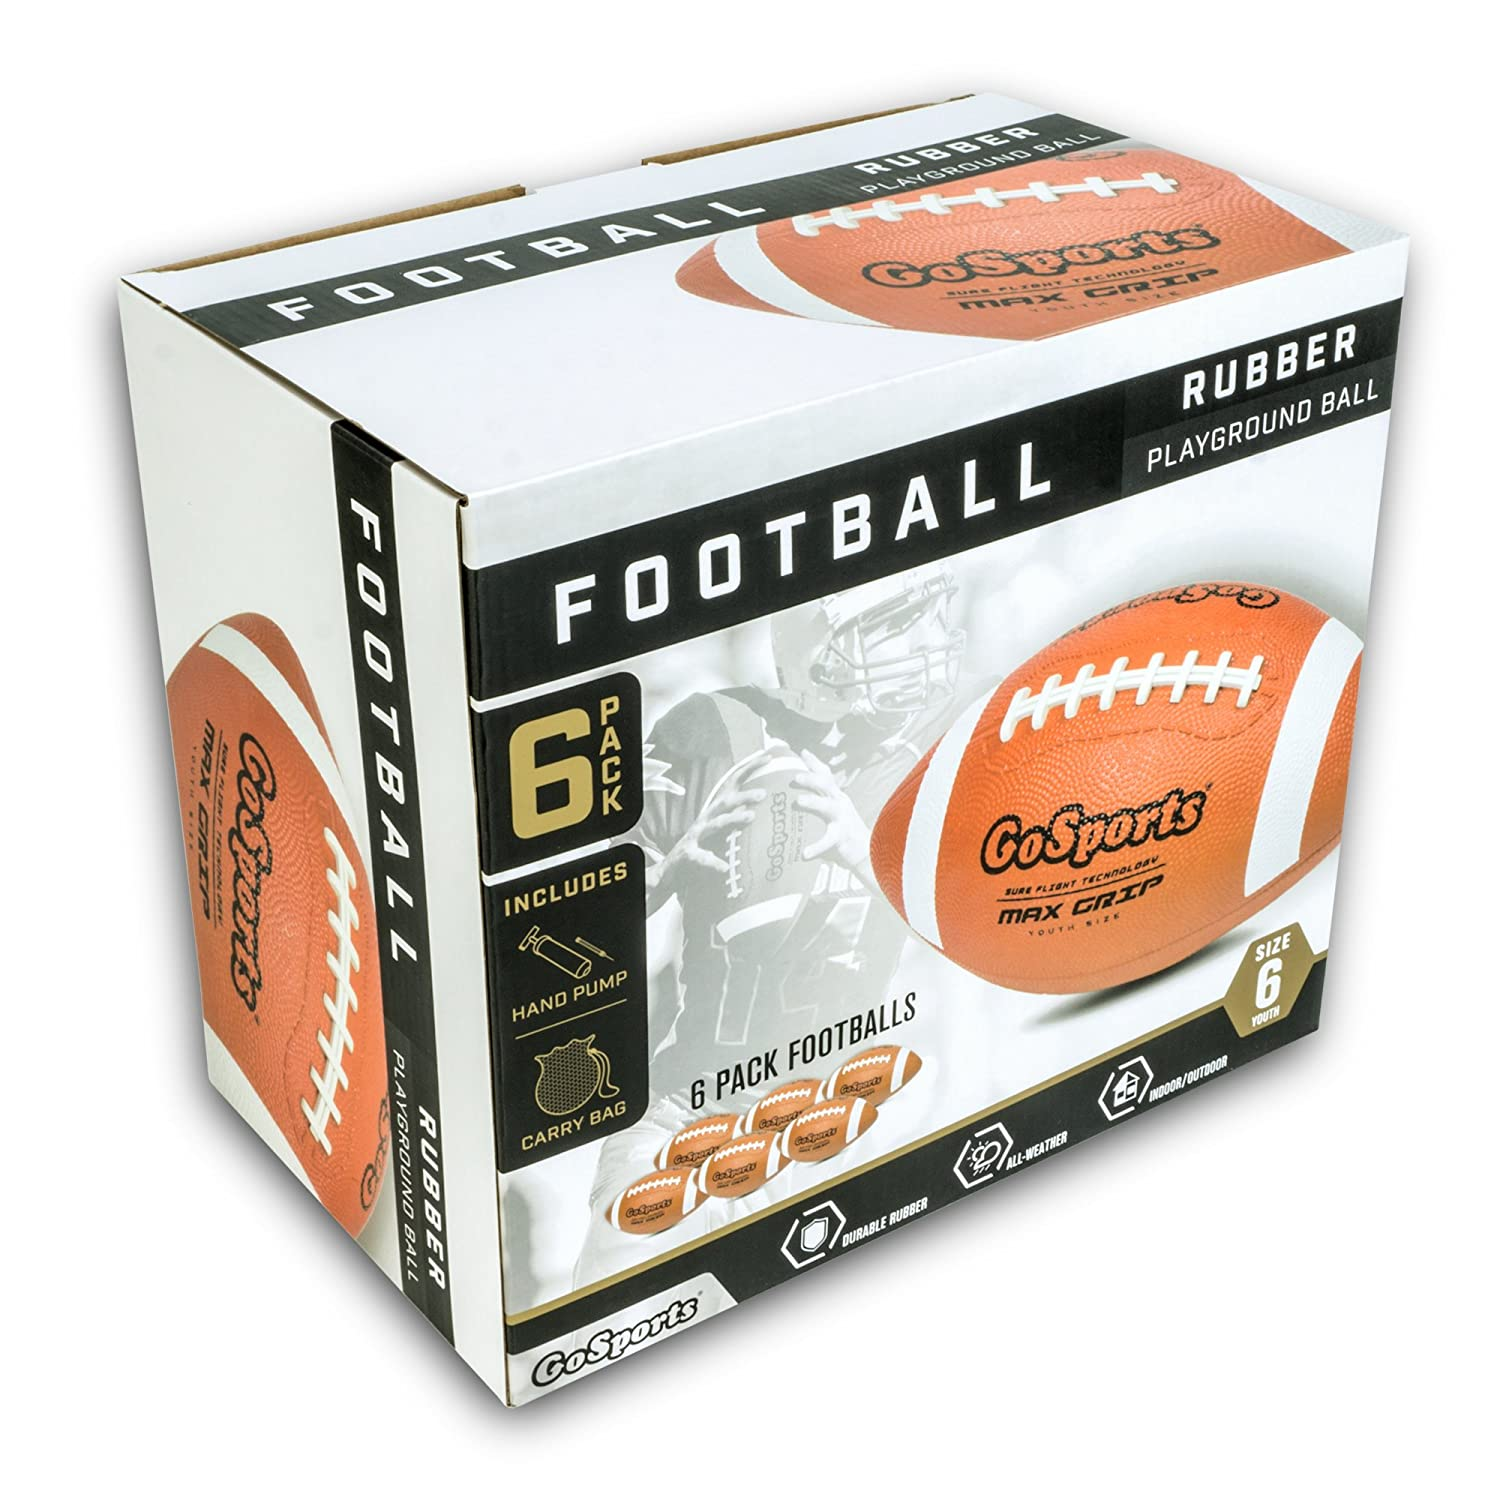 6 Pack of Youth Size Balls with Pump /& Carrying Bag GoSports Rubber Footballs